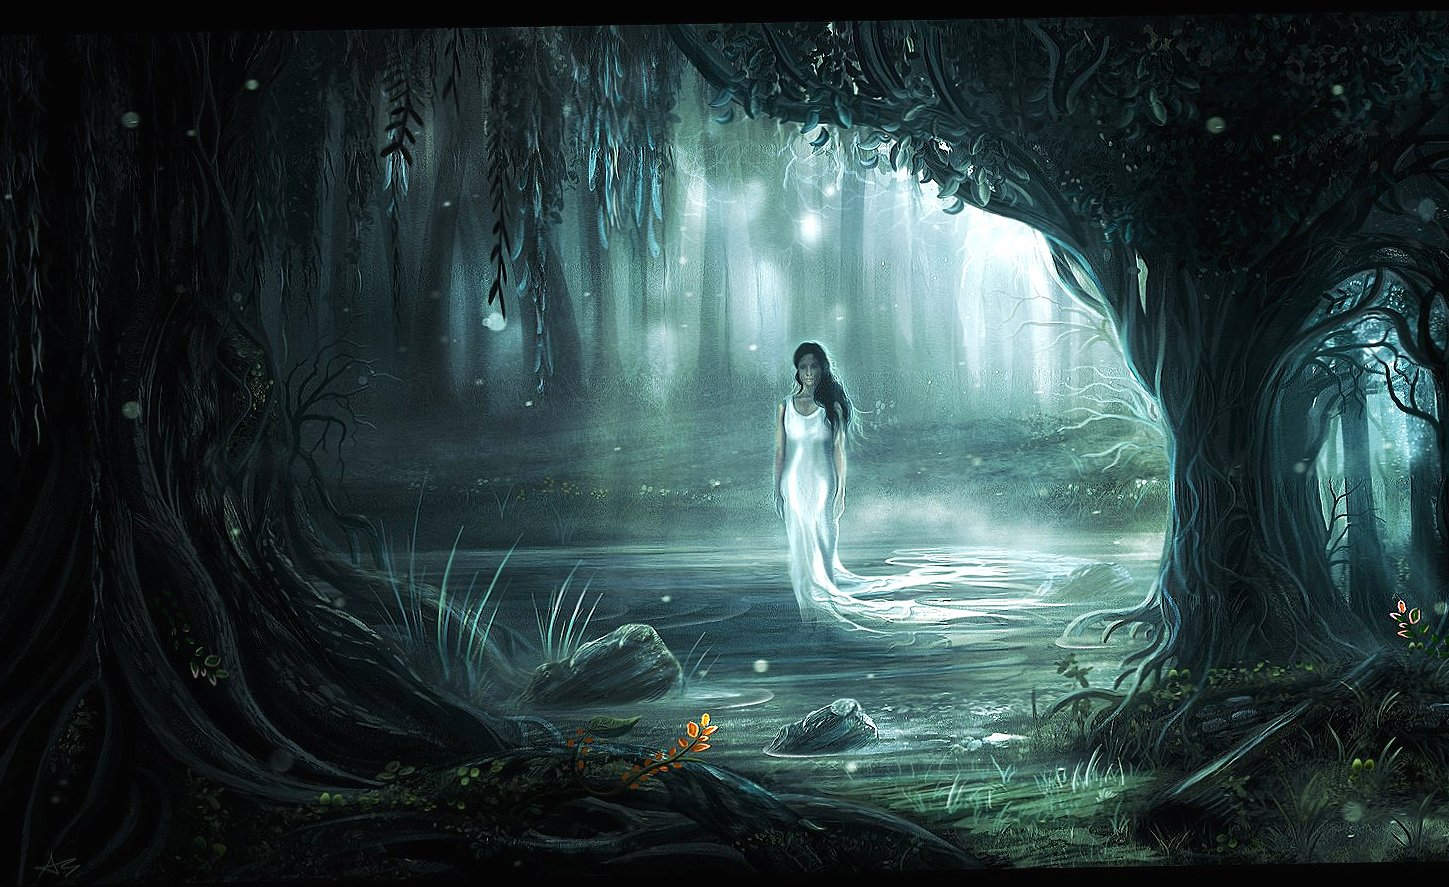 Ghost woman in a forest wallpapers HD quality